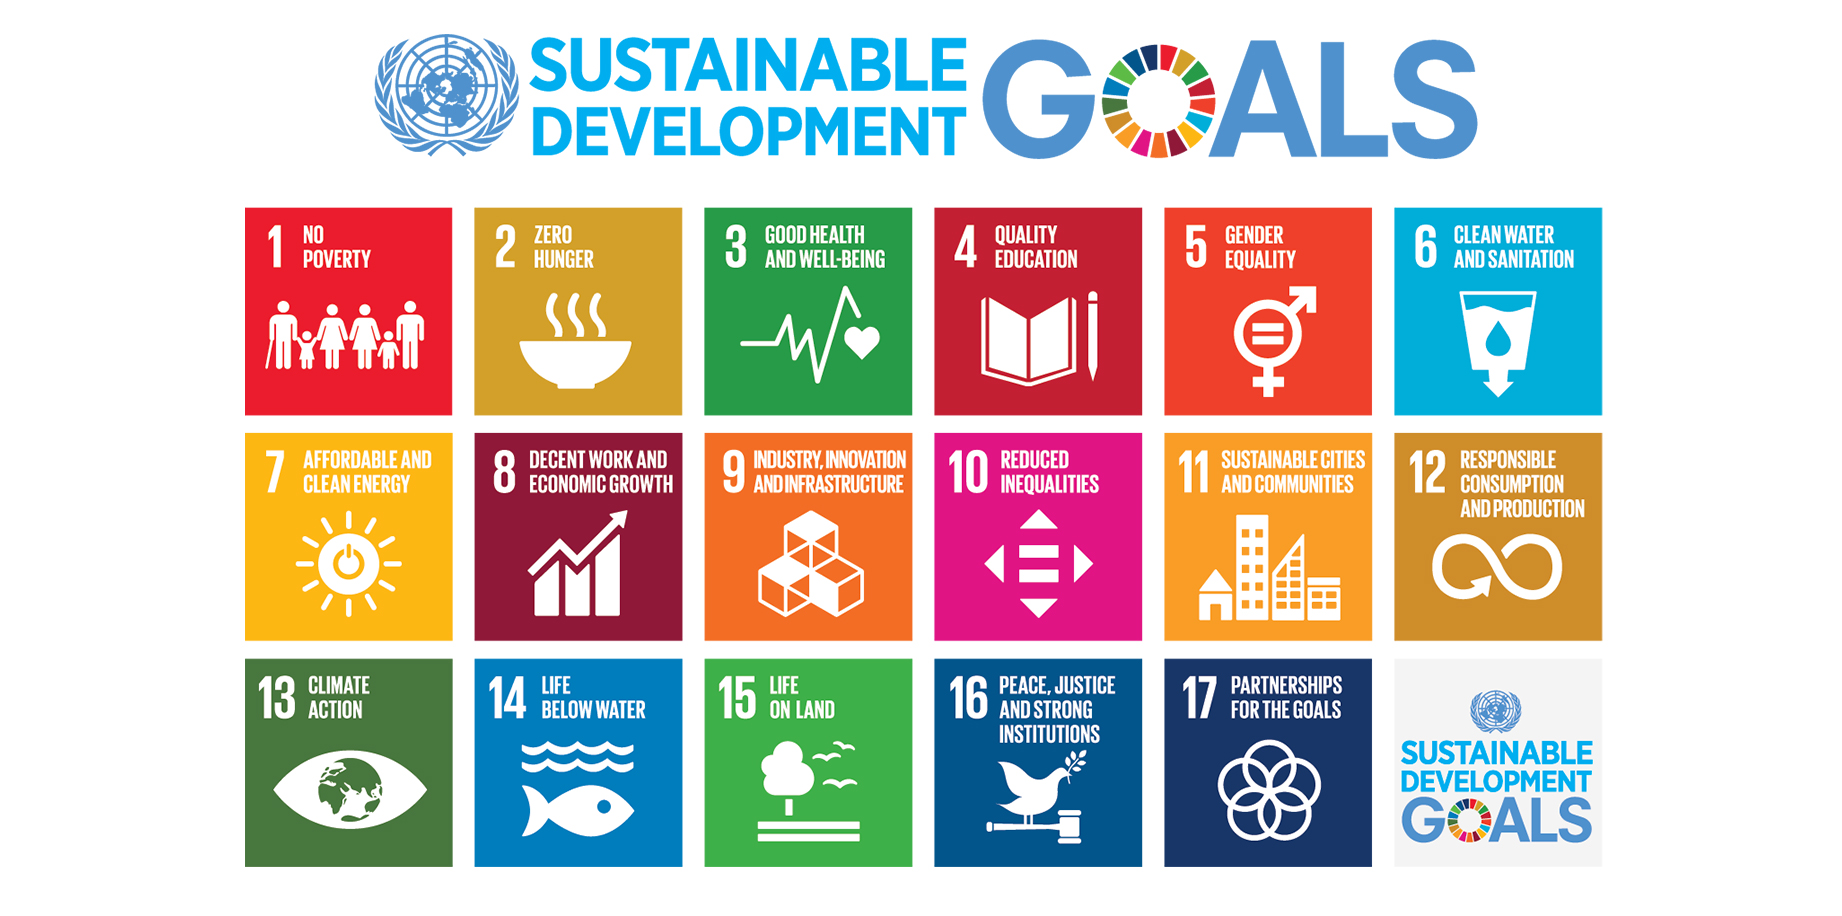 How are we doing with the environment-related Sustainable Development Goals?